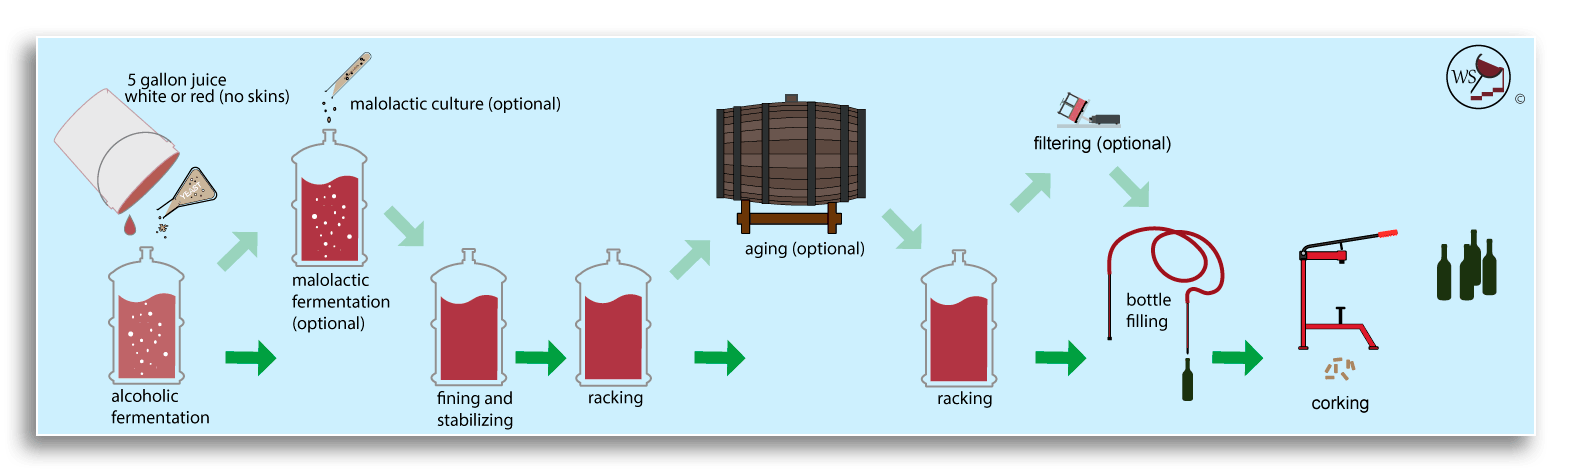 Infographic showing winemaking workflow from grape juice